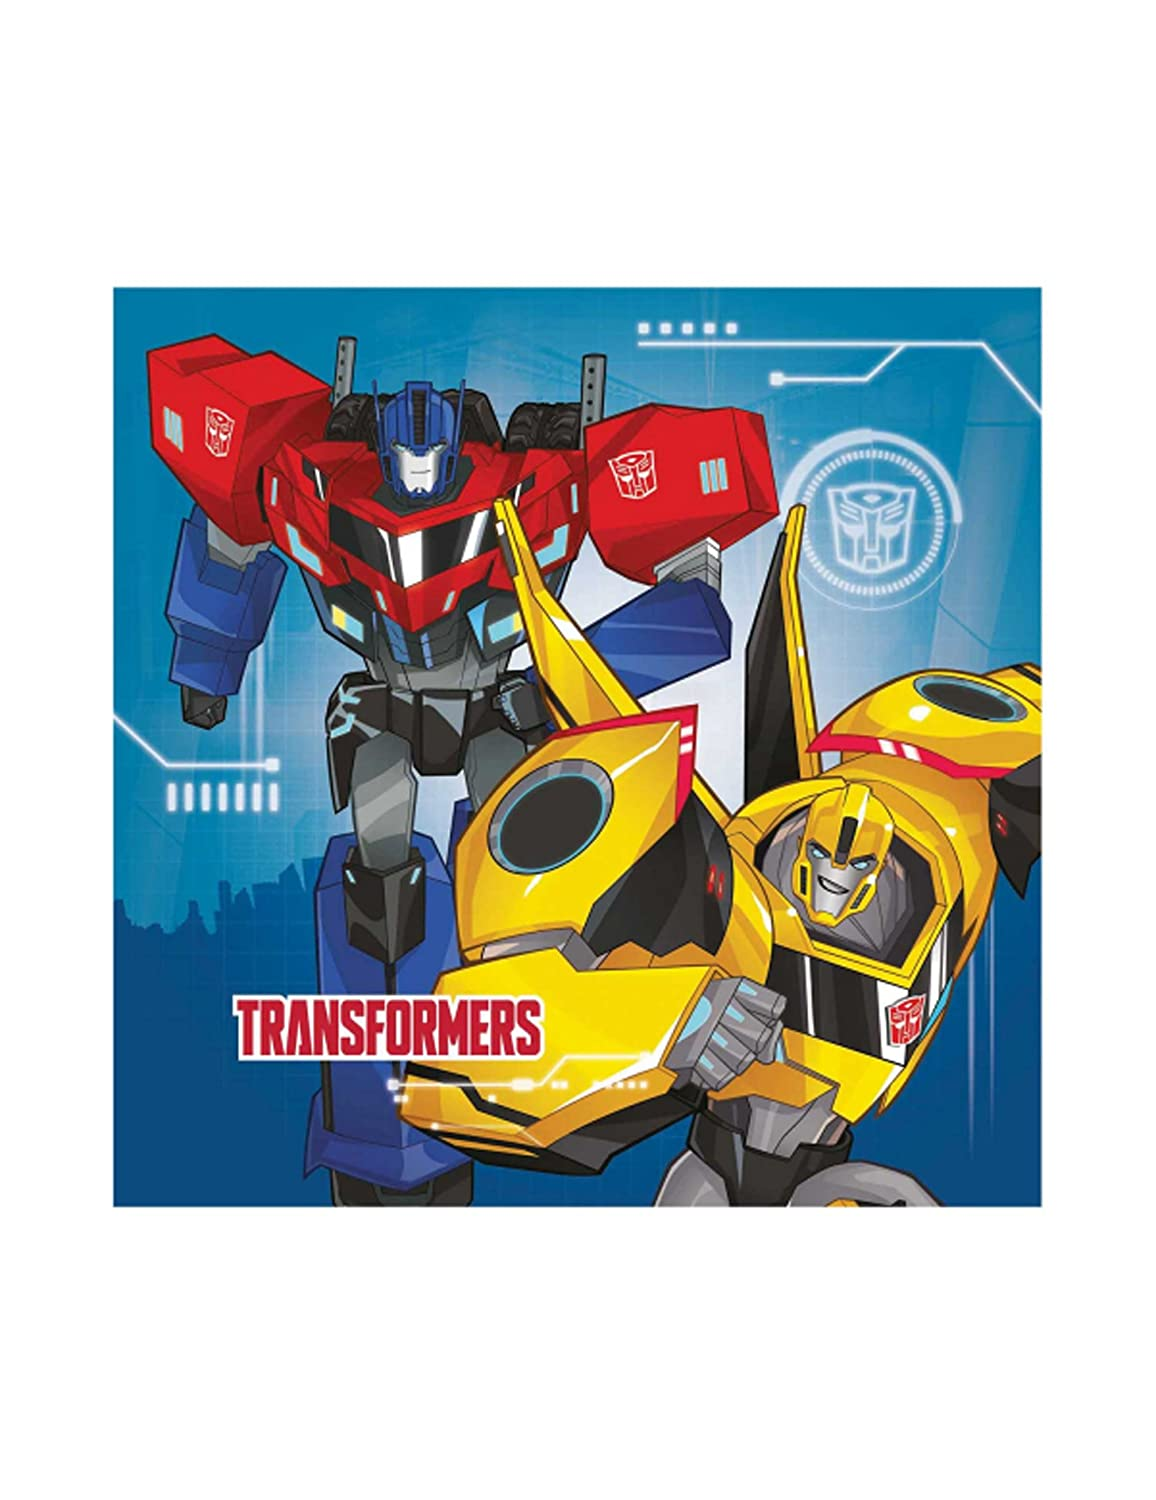 Delights Direct Transformers Lunch Napkins 9901304